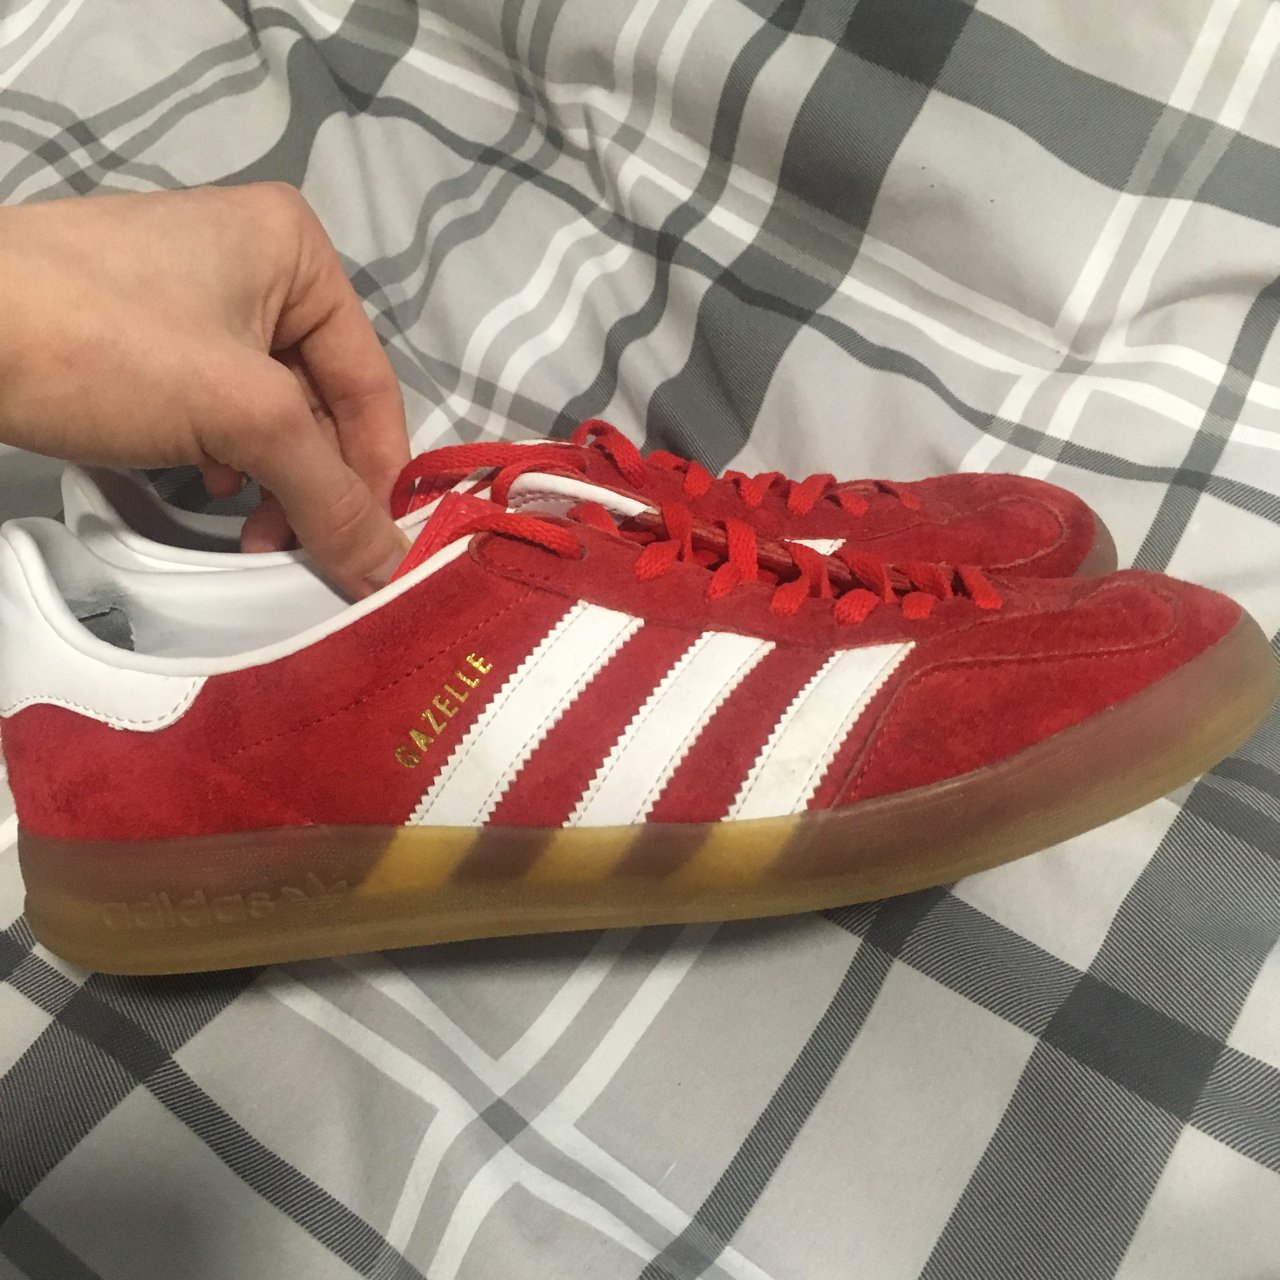 ea3b8e9ab52 Adidas gazelle indoor Red Size 8 Good condition Selling as - Depop